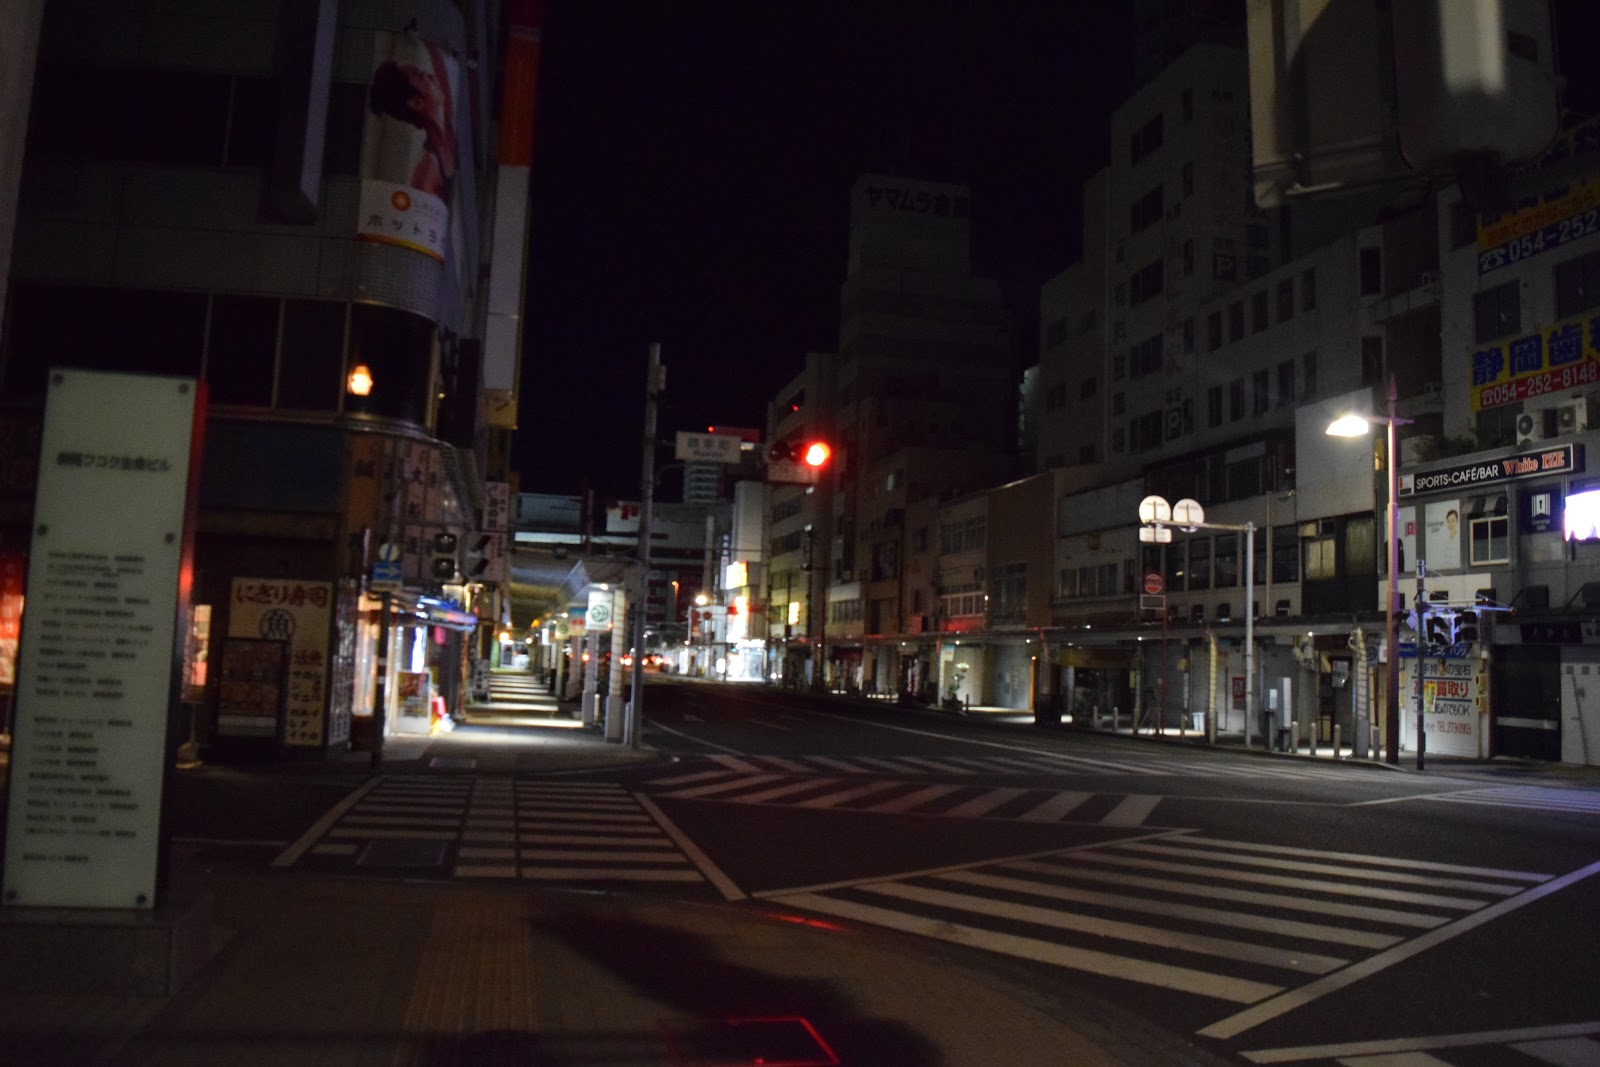 Scramble crossing in Shizuoka city after dark